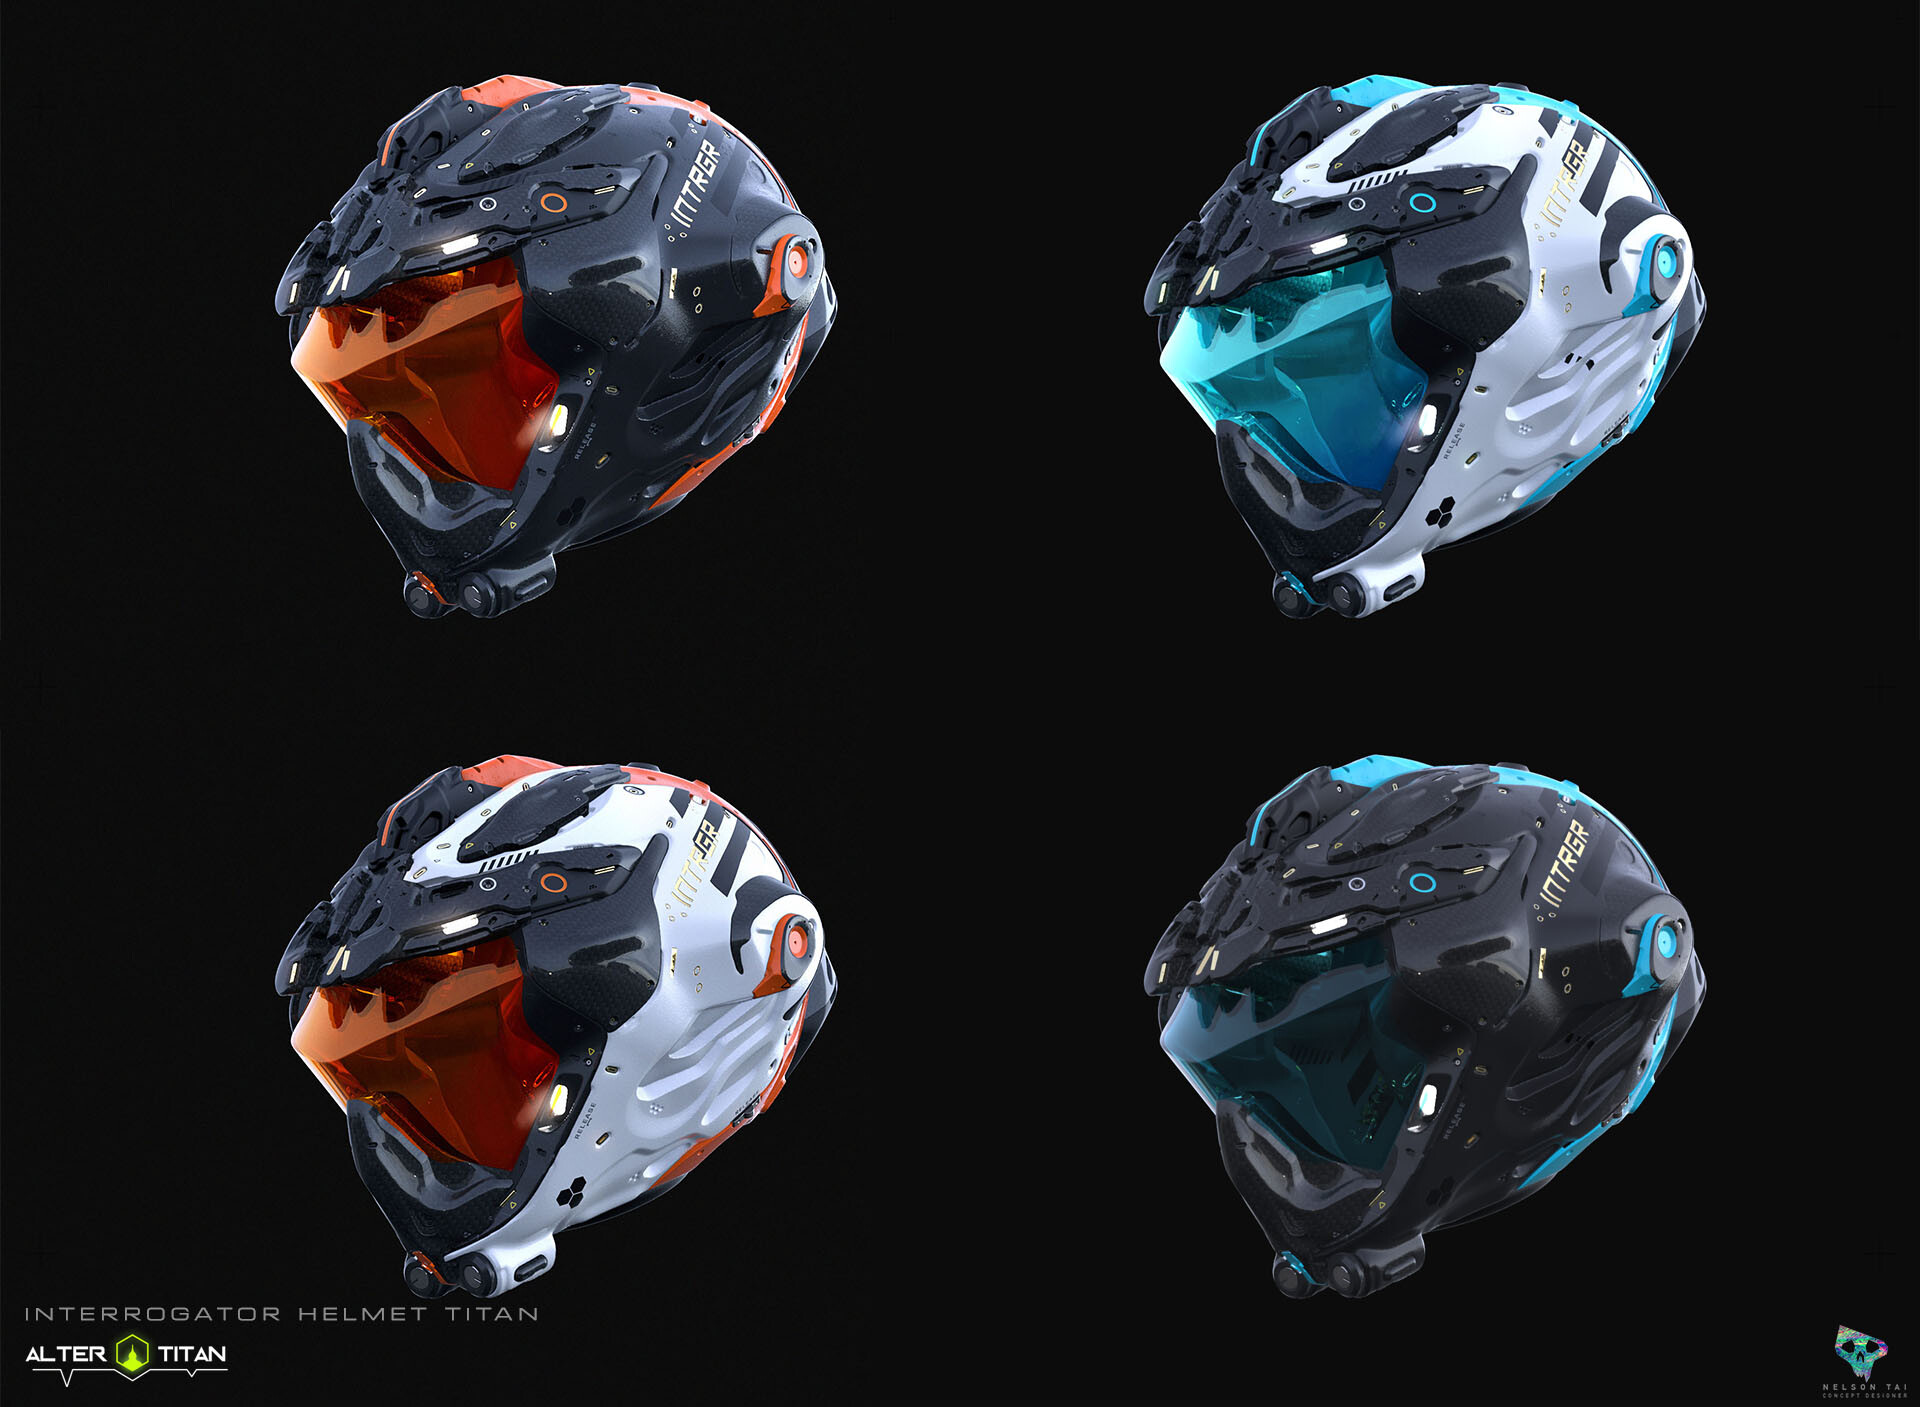 Color variations of the helmet